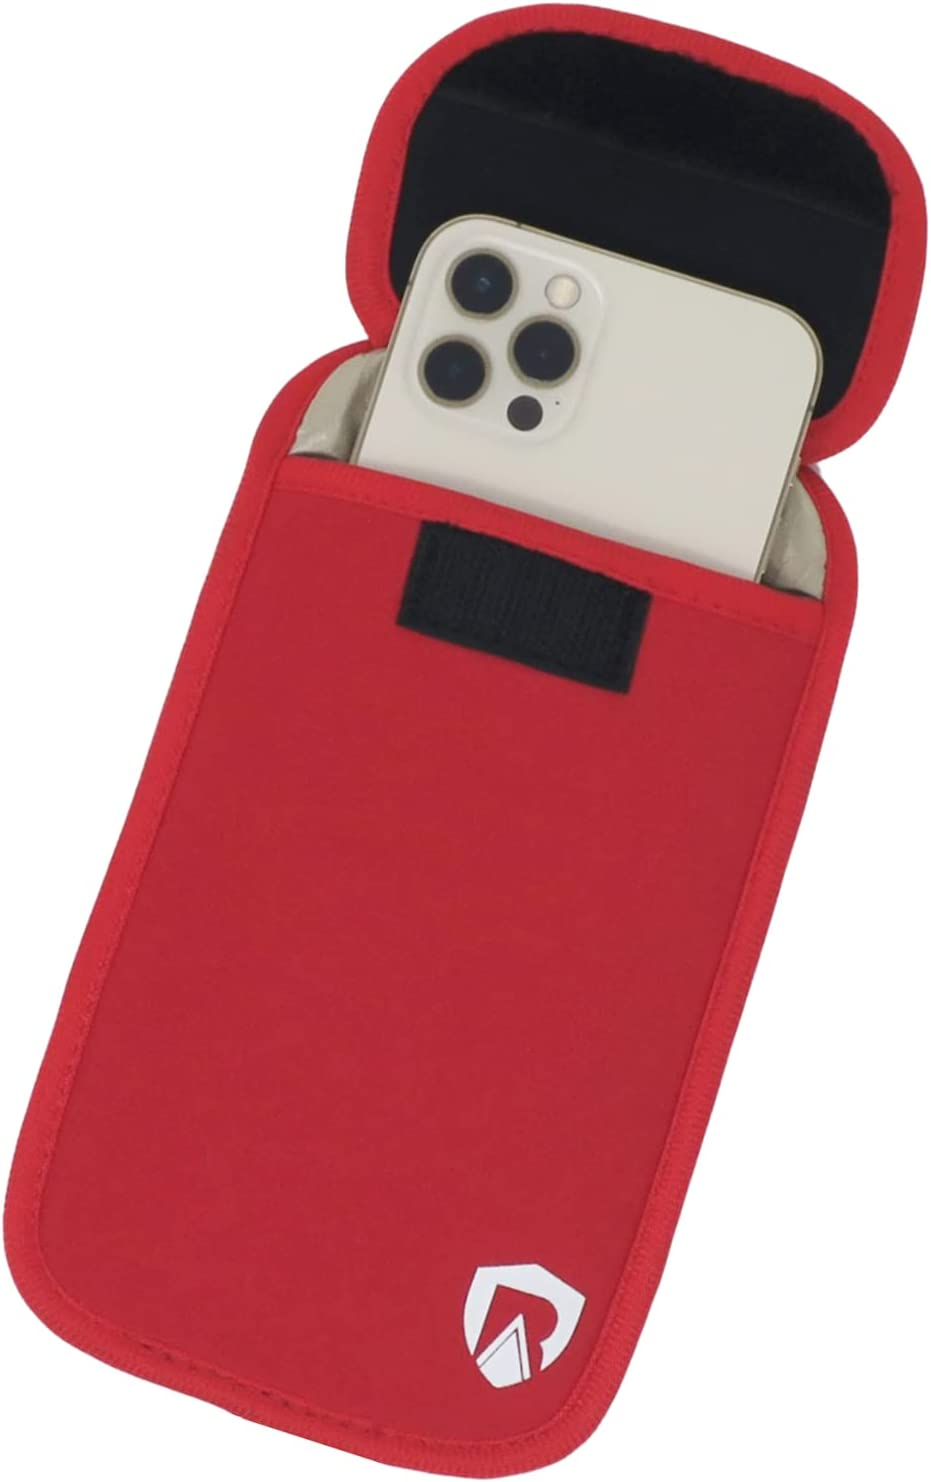 RadiArmor EMF Blocking Cell Phone Sleeve - Fits Most Cell Phones - Updated Version (Red, Large)